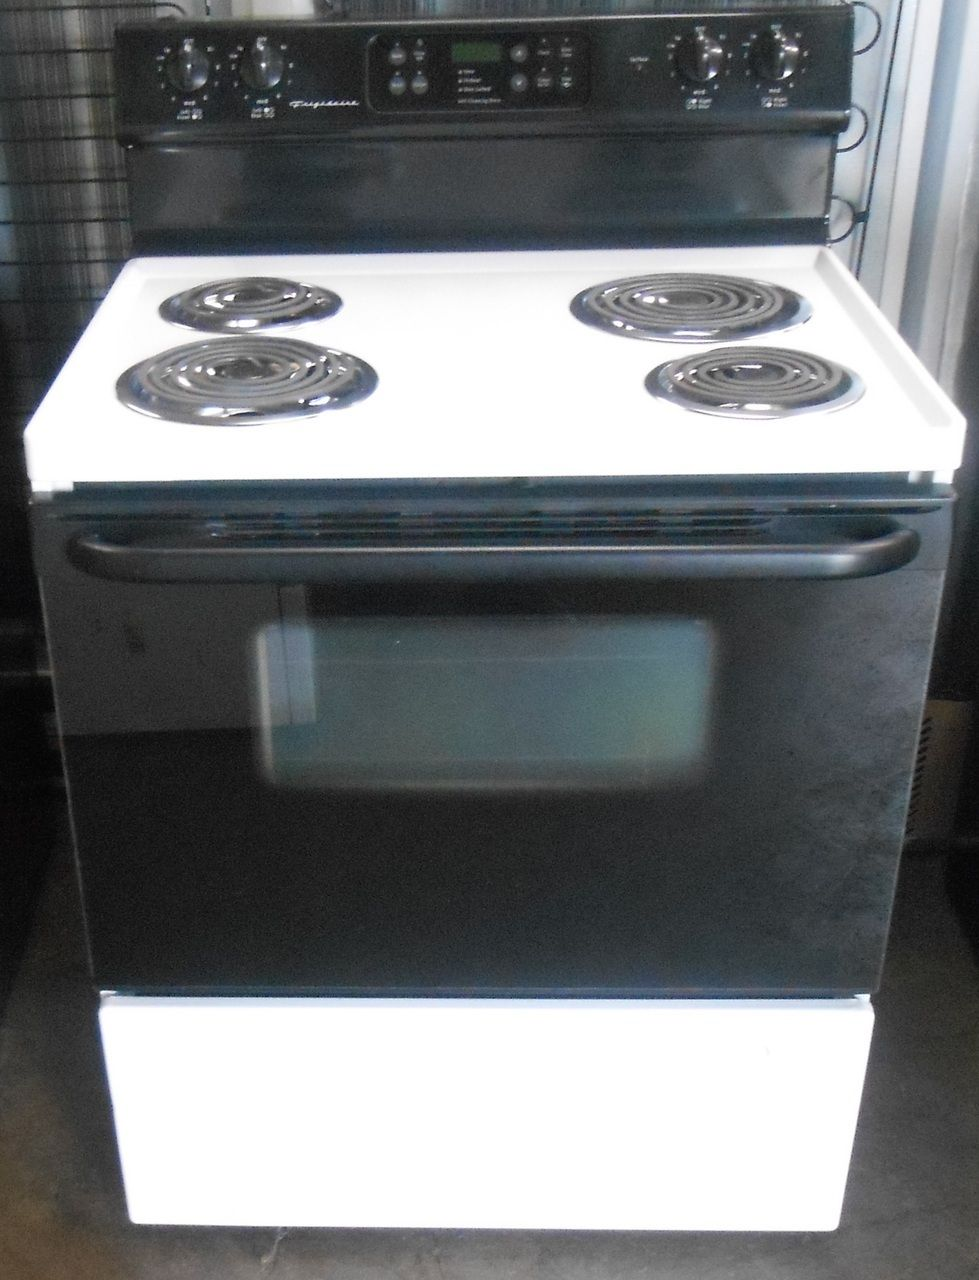 Appliance city frigidaire 30 inch self cleaning electric range appliance city frigidaire 30 inch self cleaning electric range coil burners 2 large 2 small time bake option black glass oven door with window storage eventelaan Gallery